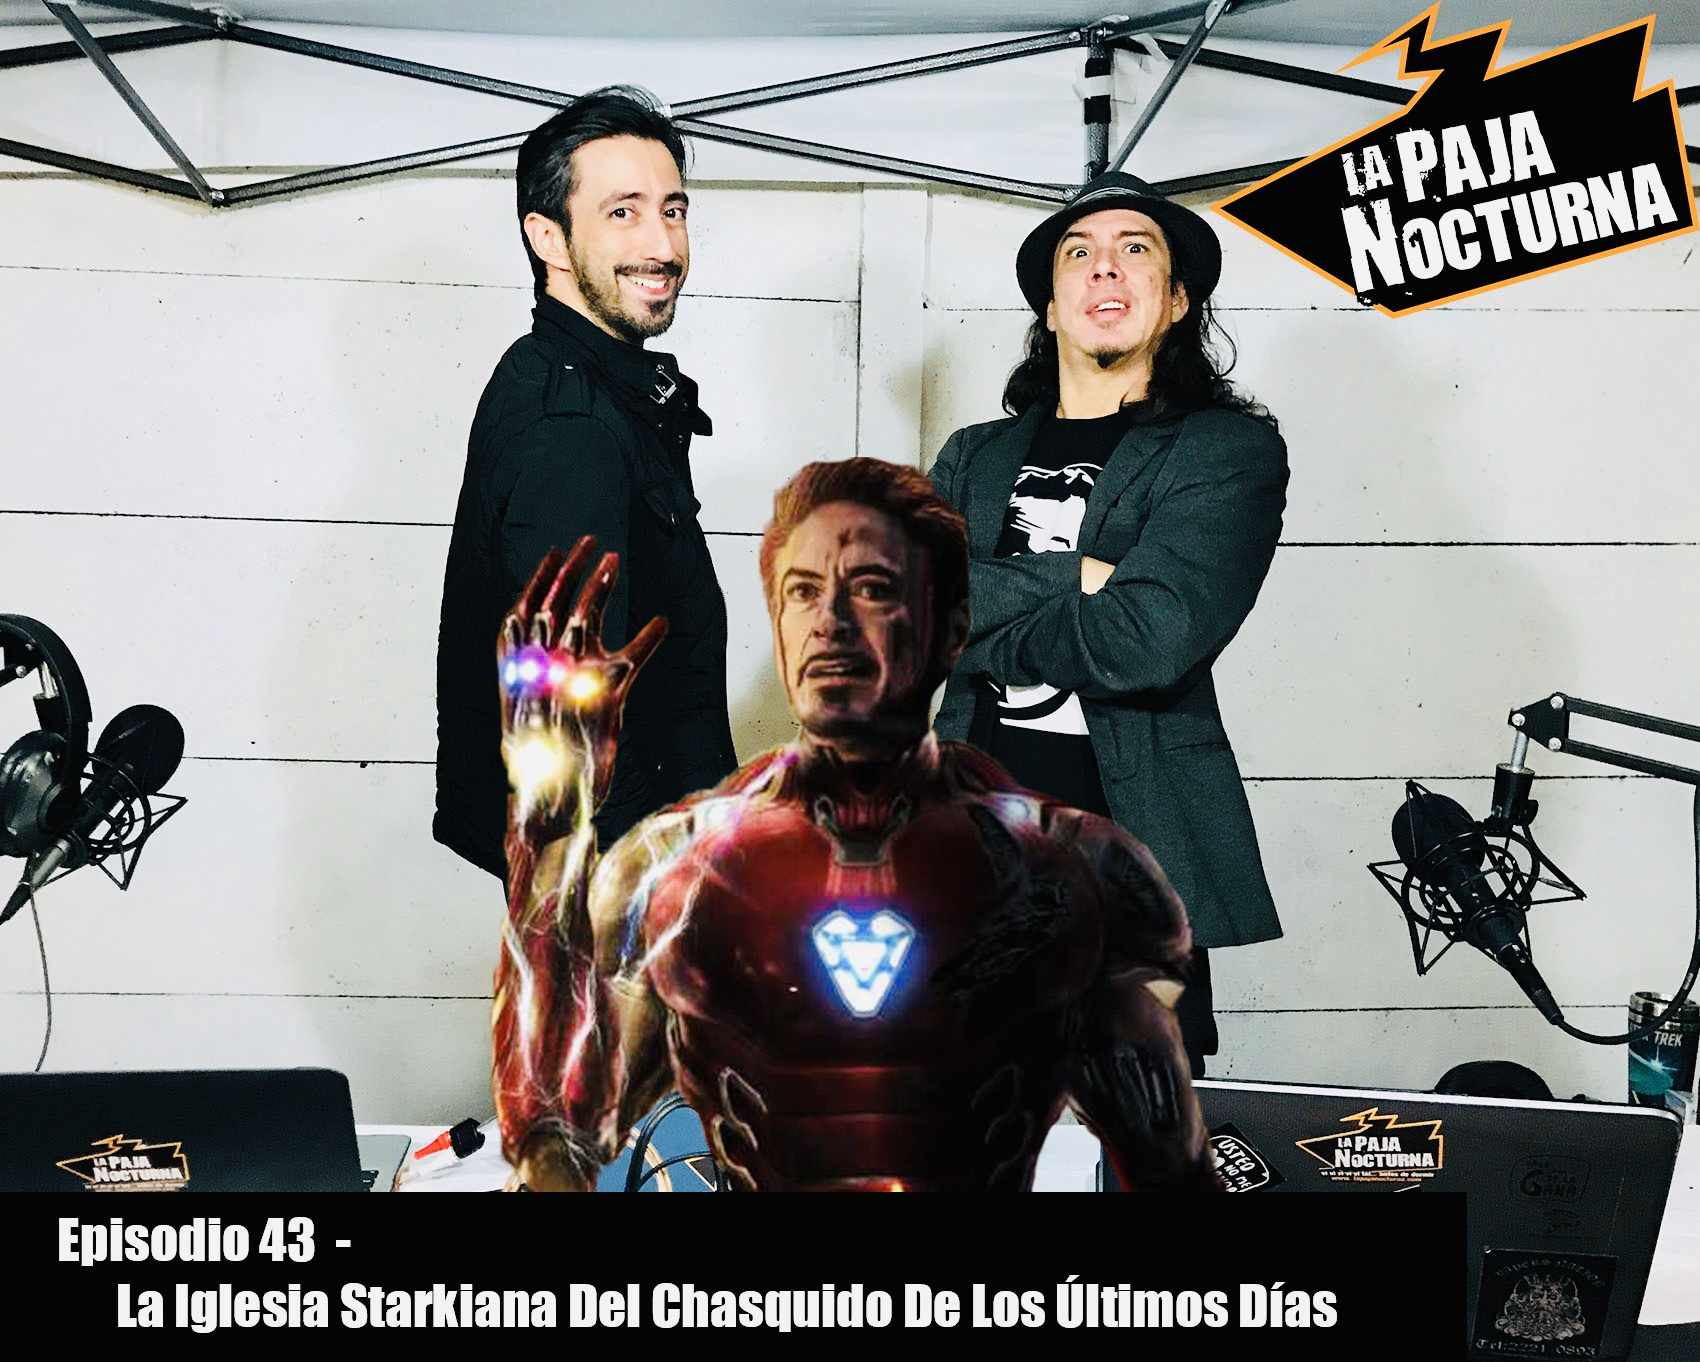 La Paja Nocturna Podcast Episodio 43